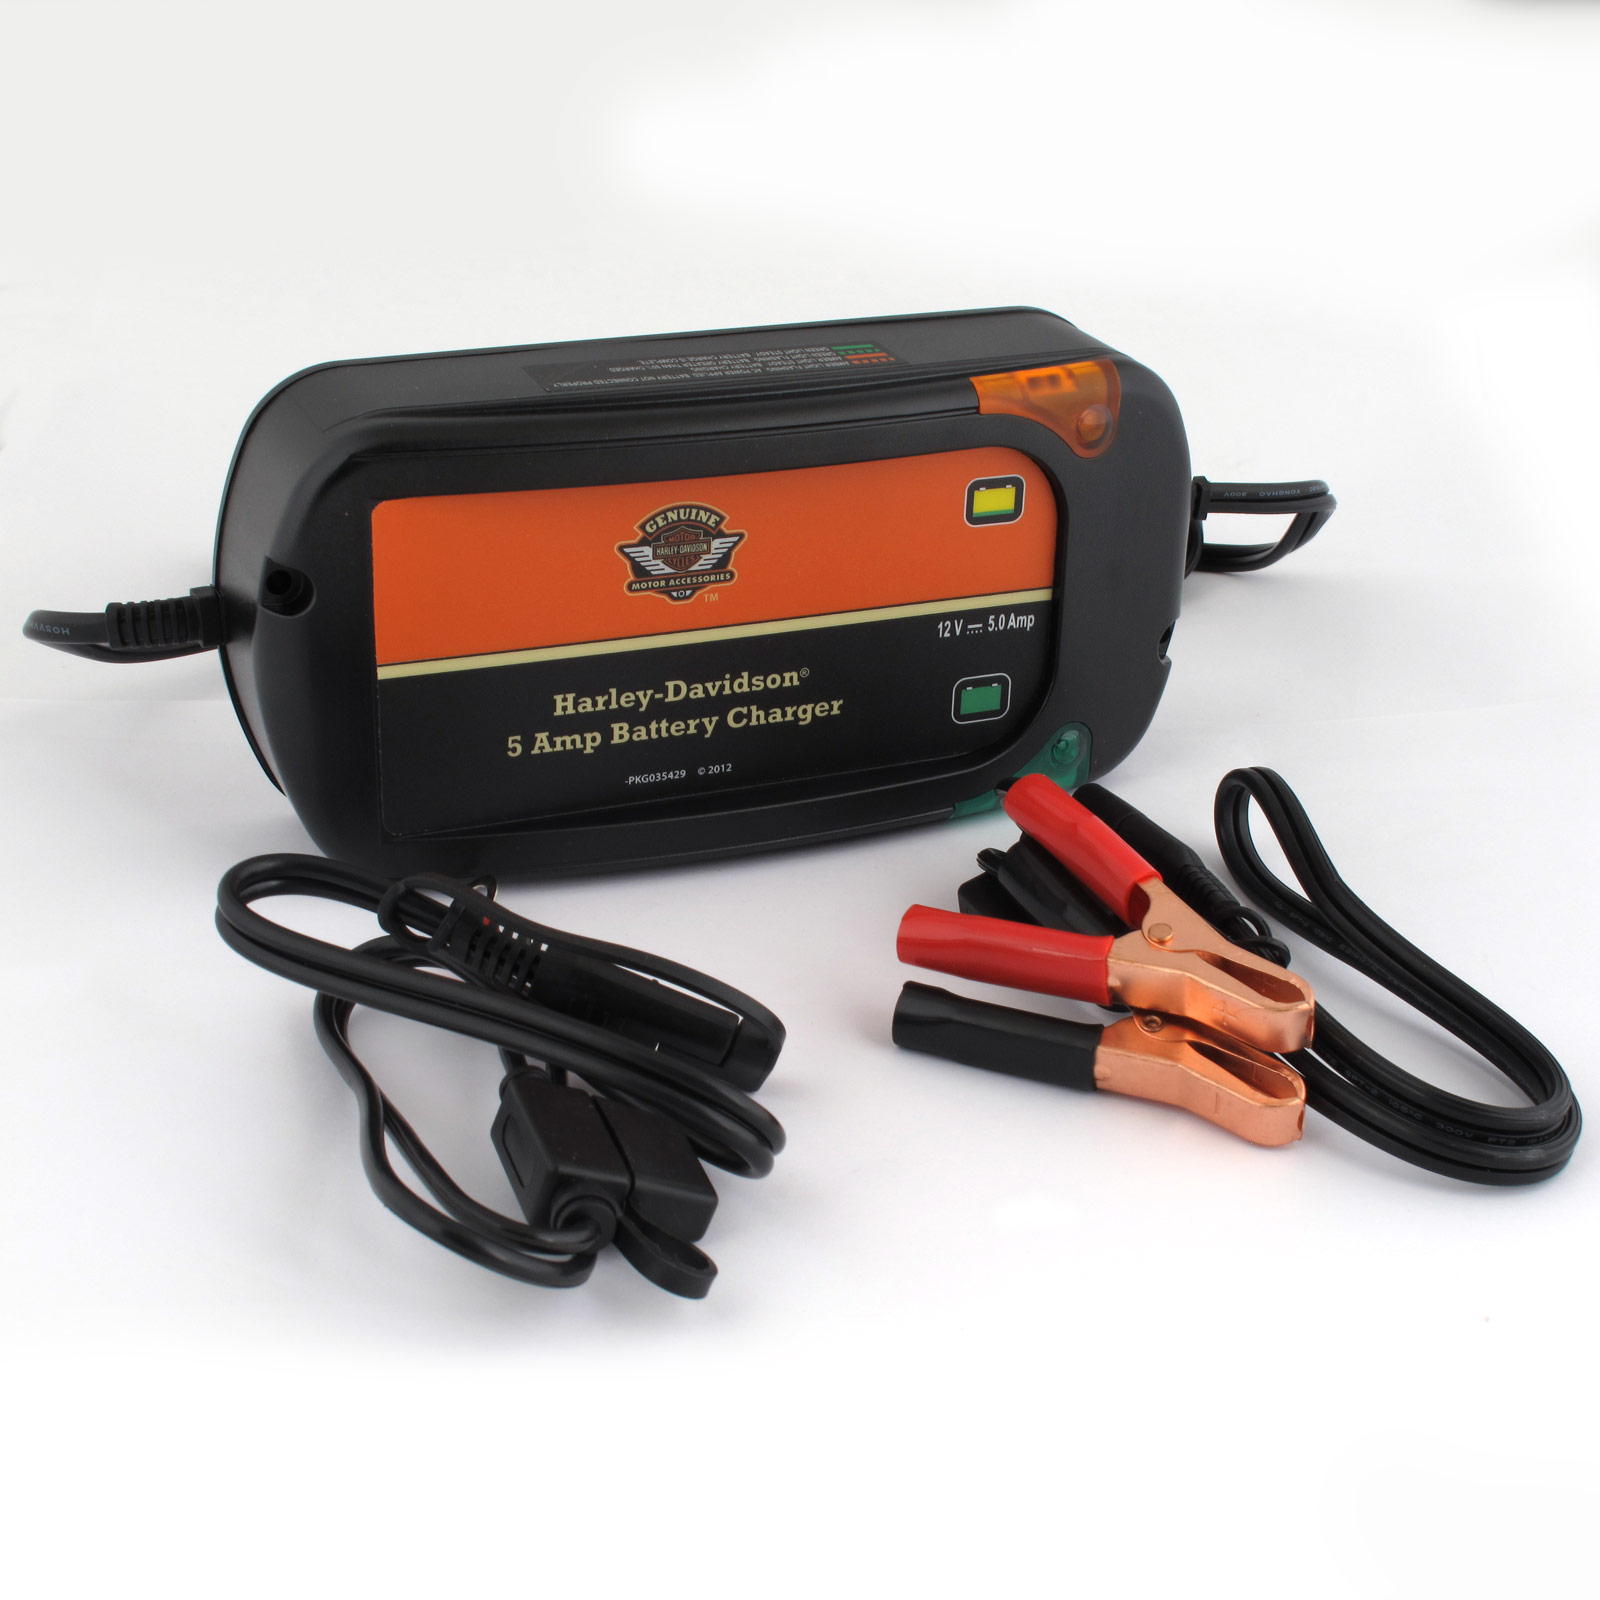 genuine harley davidson battery charger 5 amp 100 to 240 vac 50hz 60hz ebay. Black Bedroom Furniture Sets. Home Design Ideas